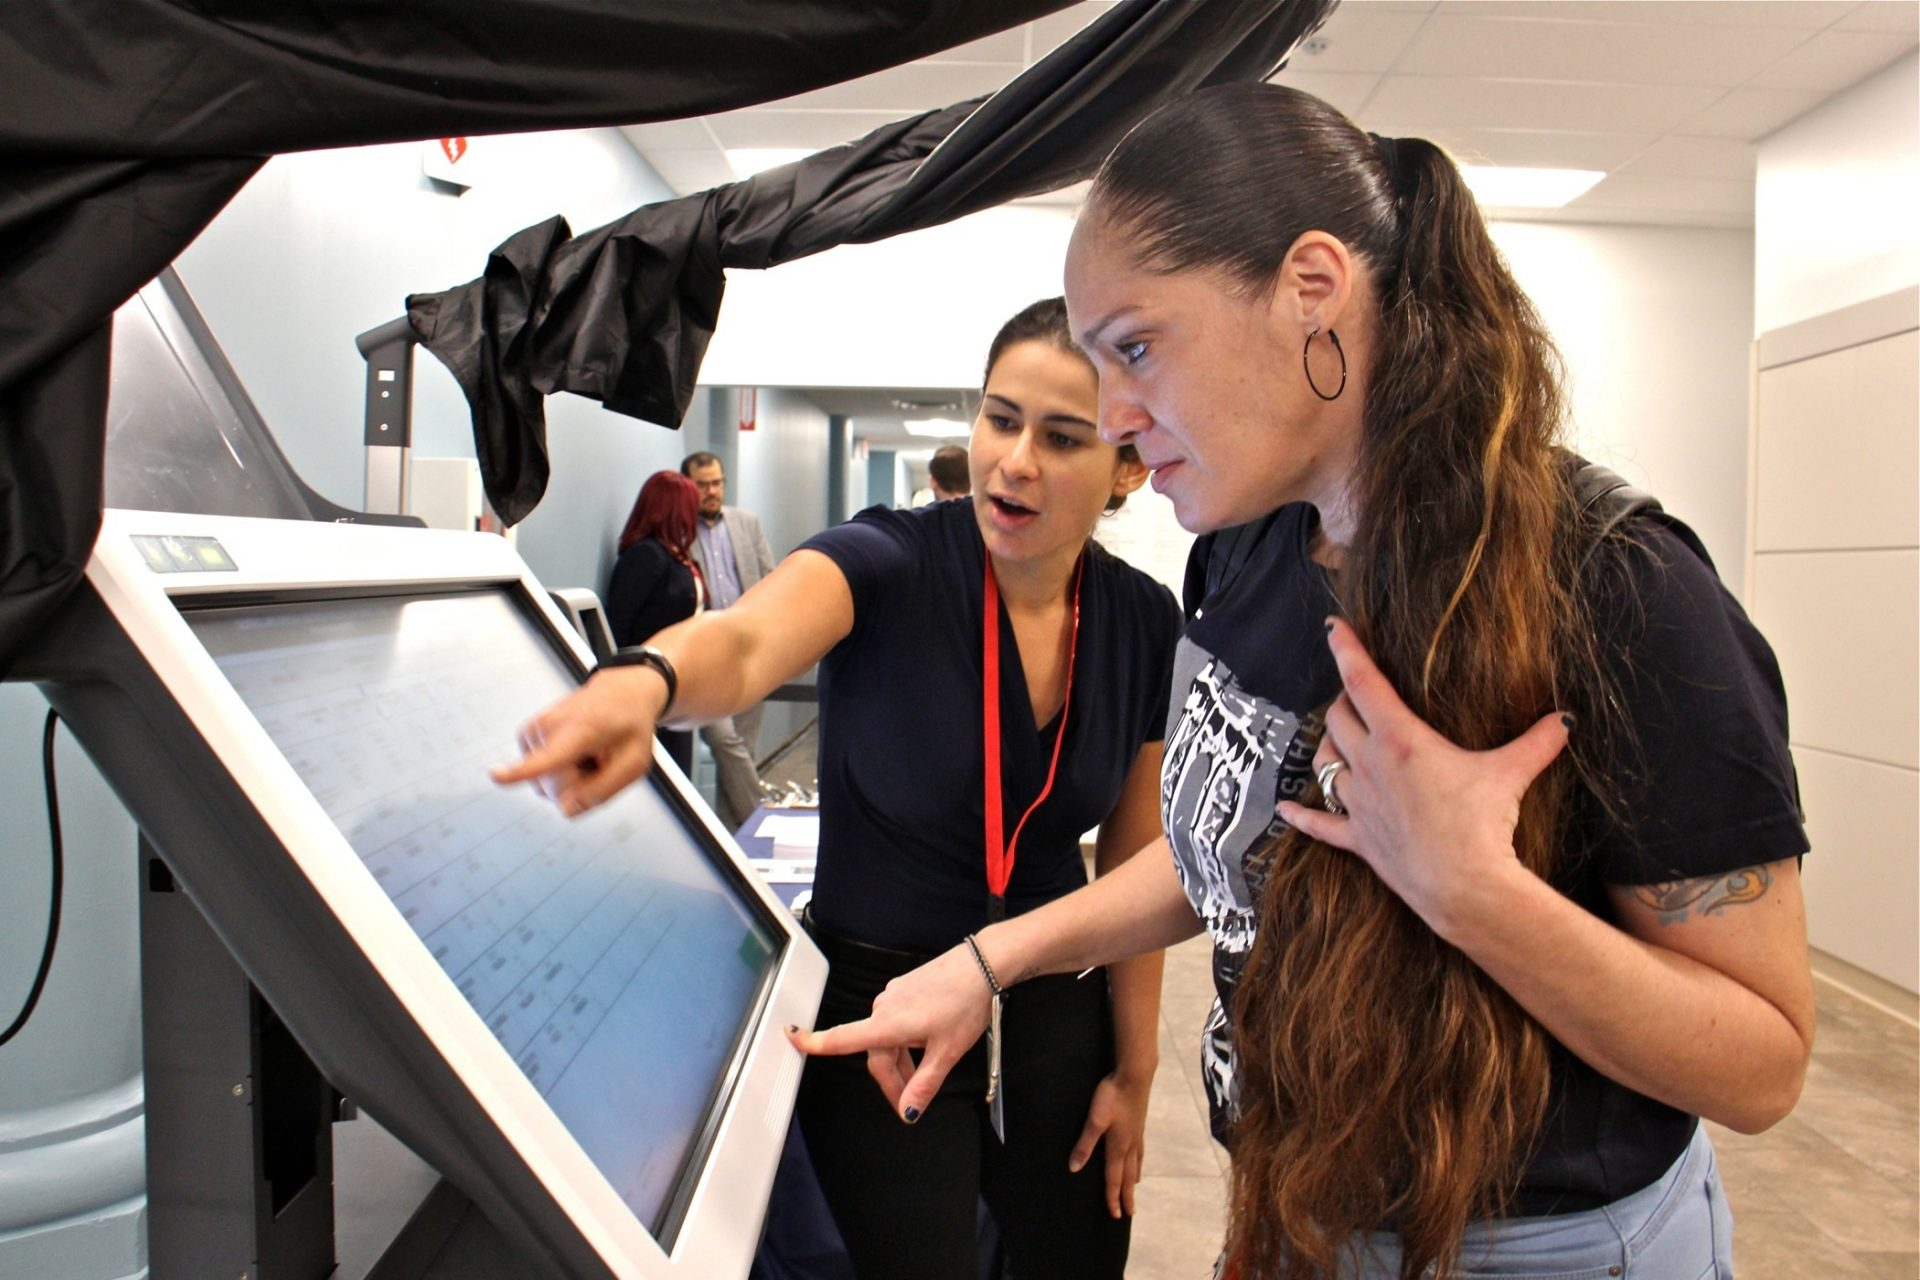 Diane Duffin learns how to use a voting machine with the help of Michelle Montalvo of the City Commissioners Office. Duffin registered to vote for the first time after learning that a conviction did not prevent her from voting in Pennsylvania.